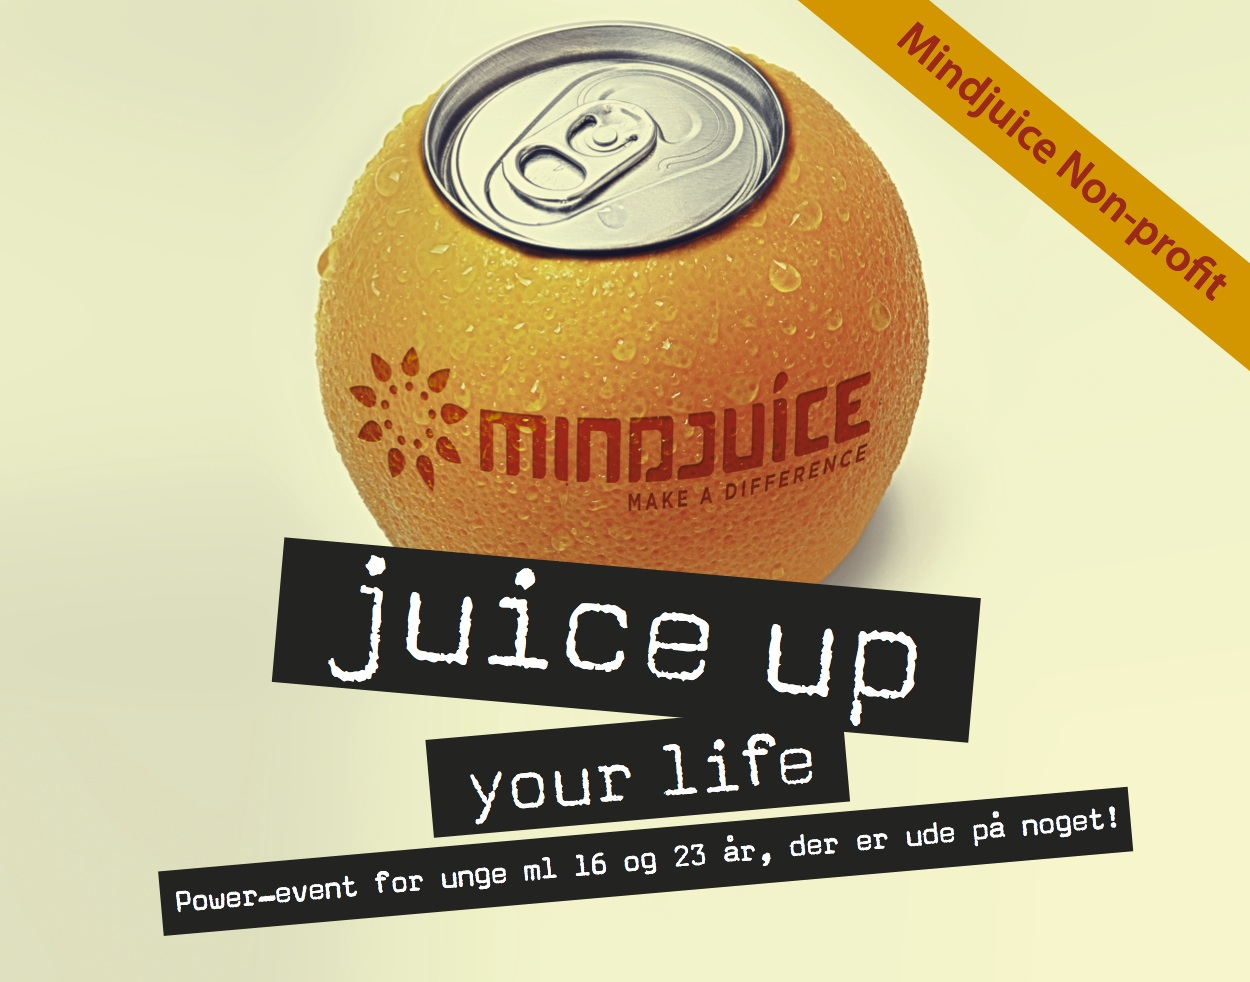 juiceupyourlife cut